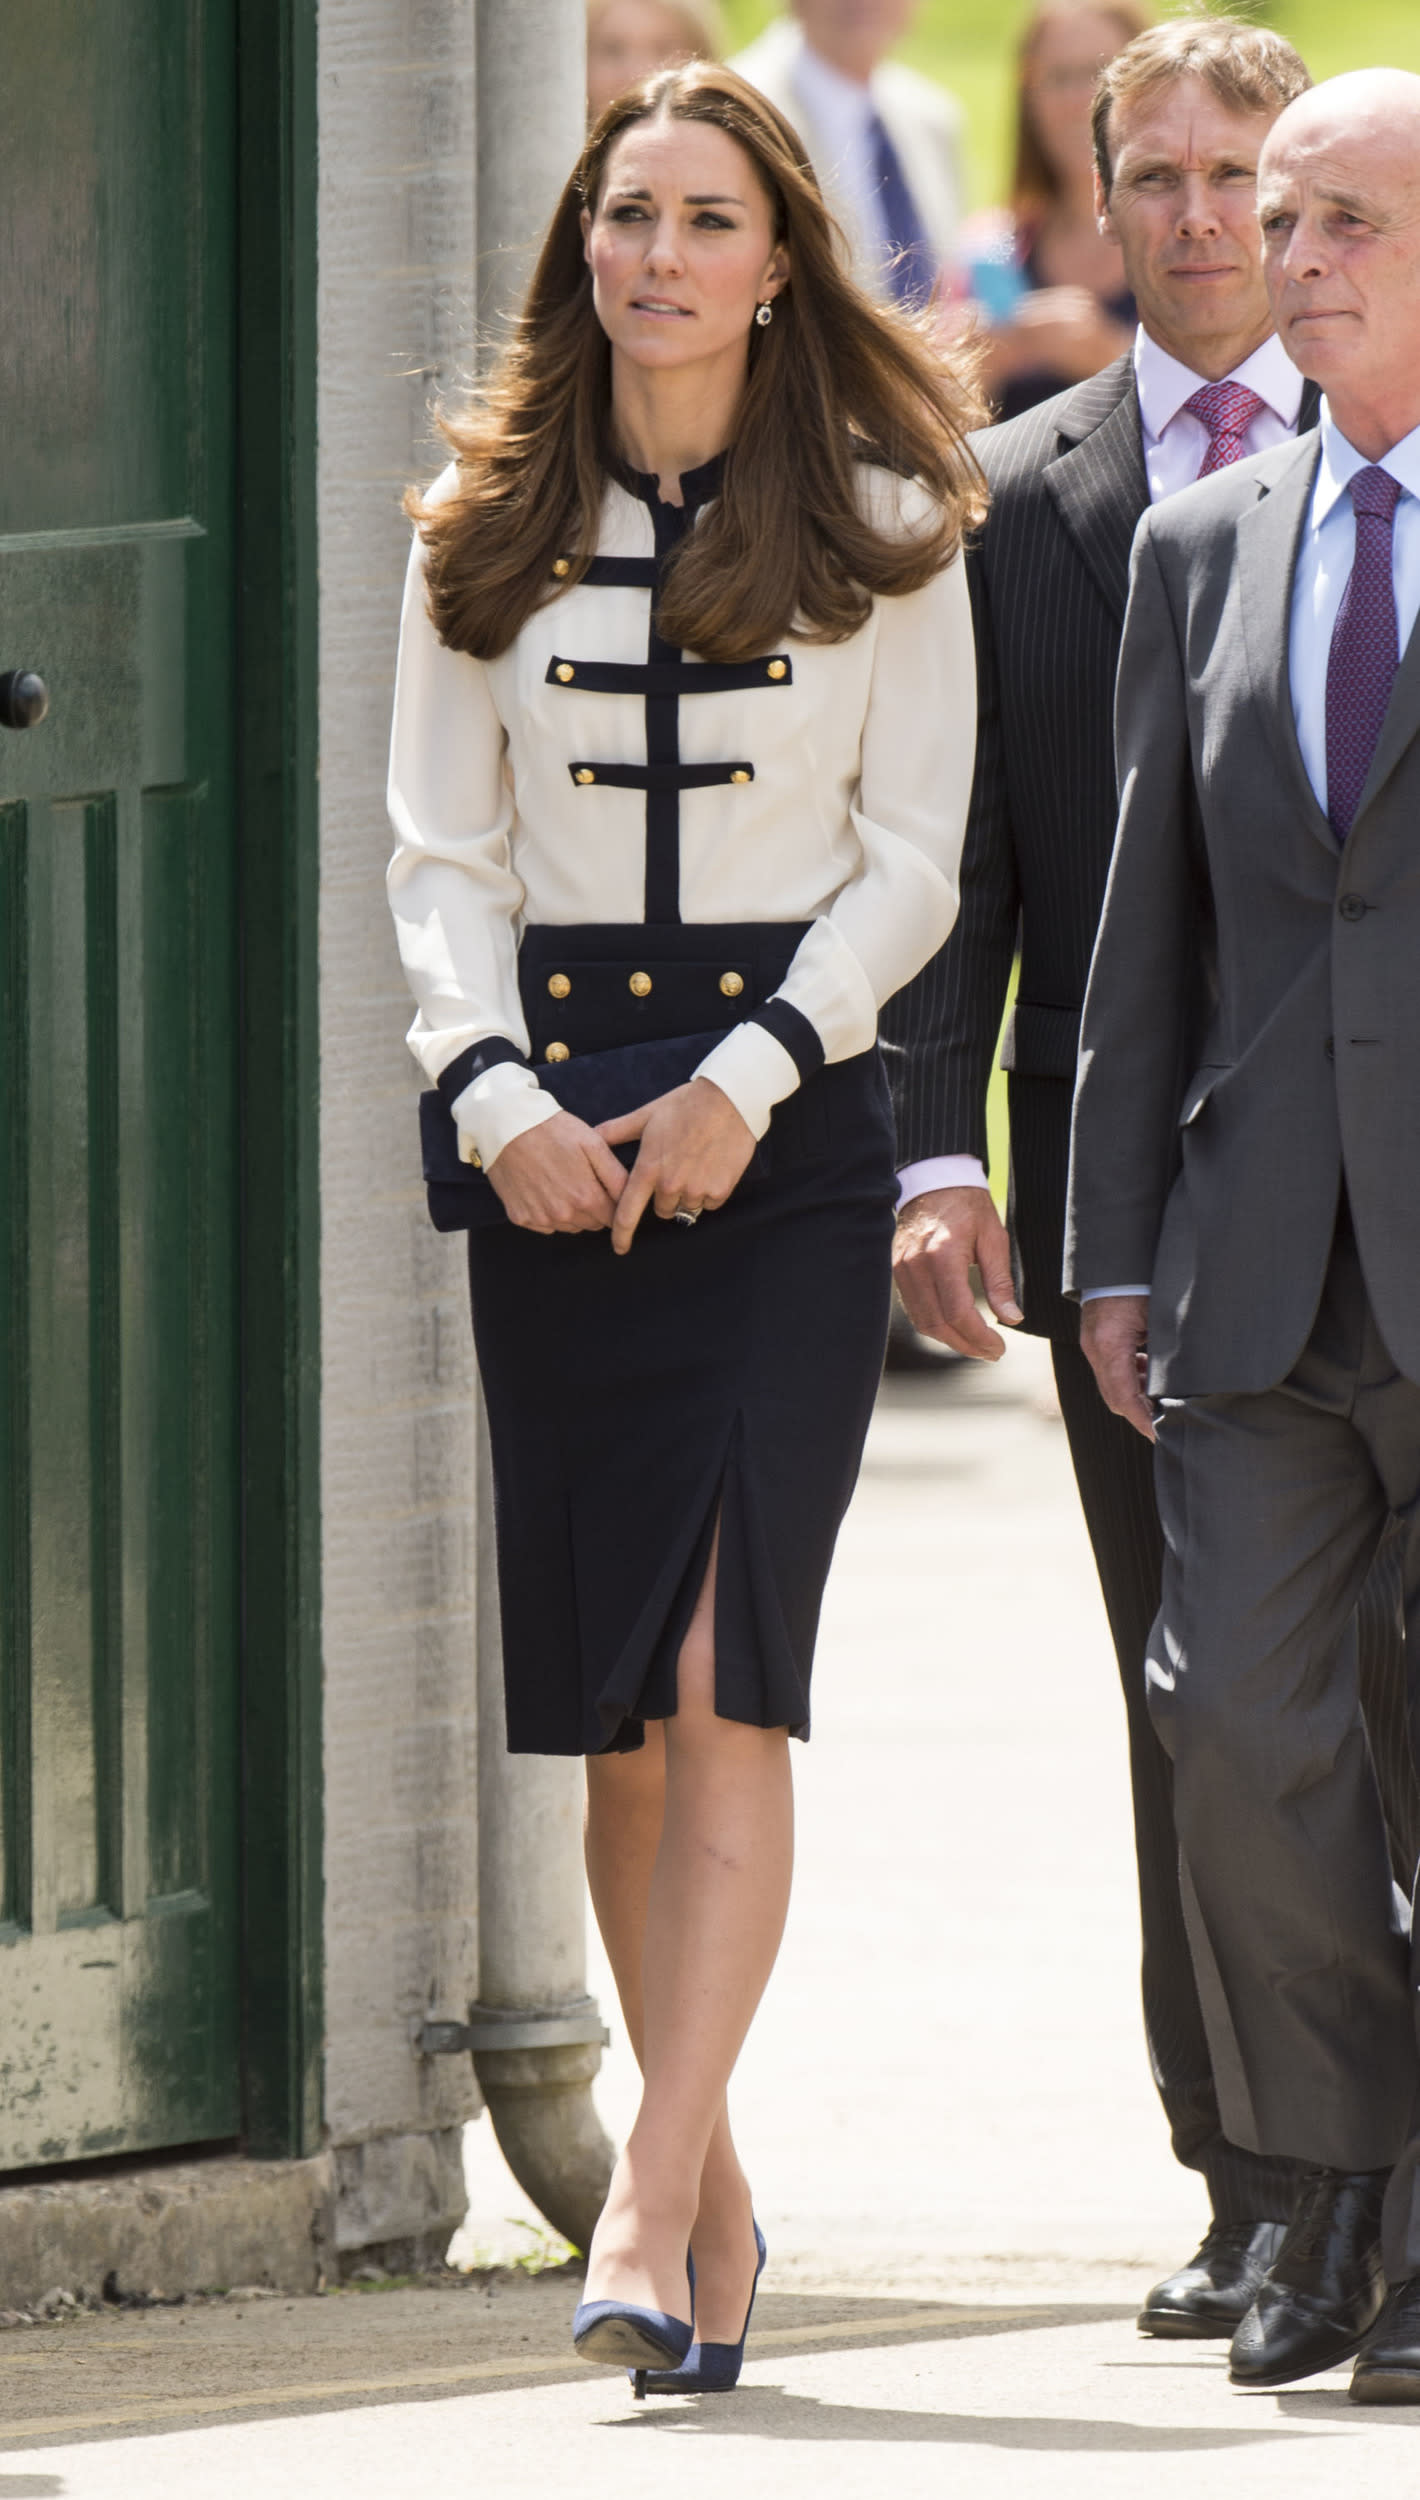 Kate is seen wearing Alexander McQueen to a military event in London.